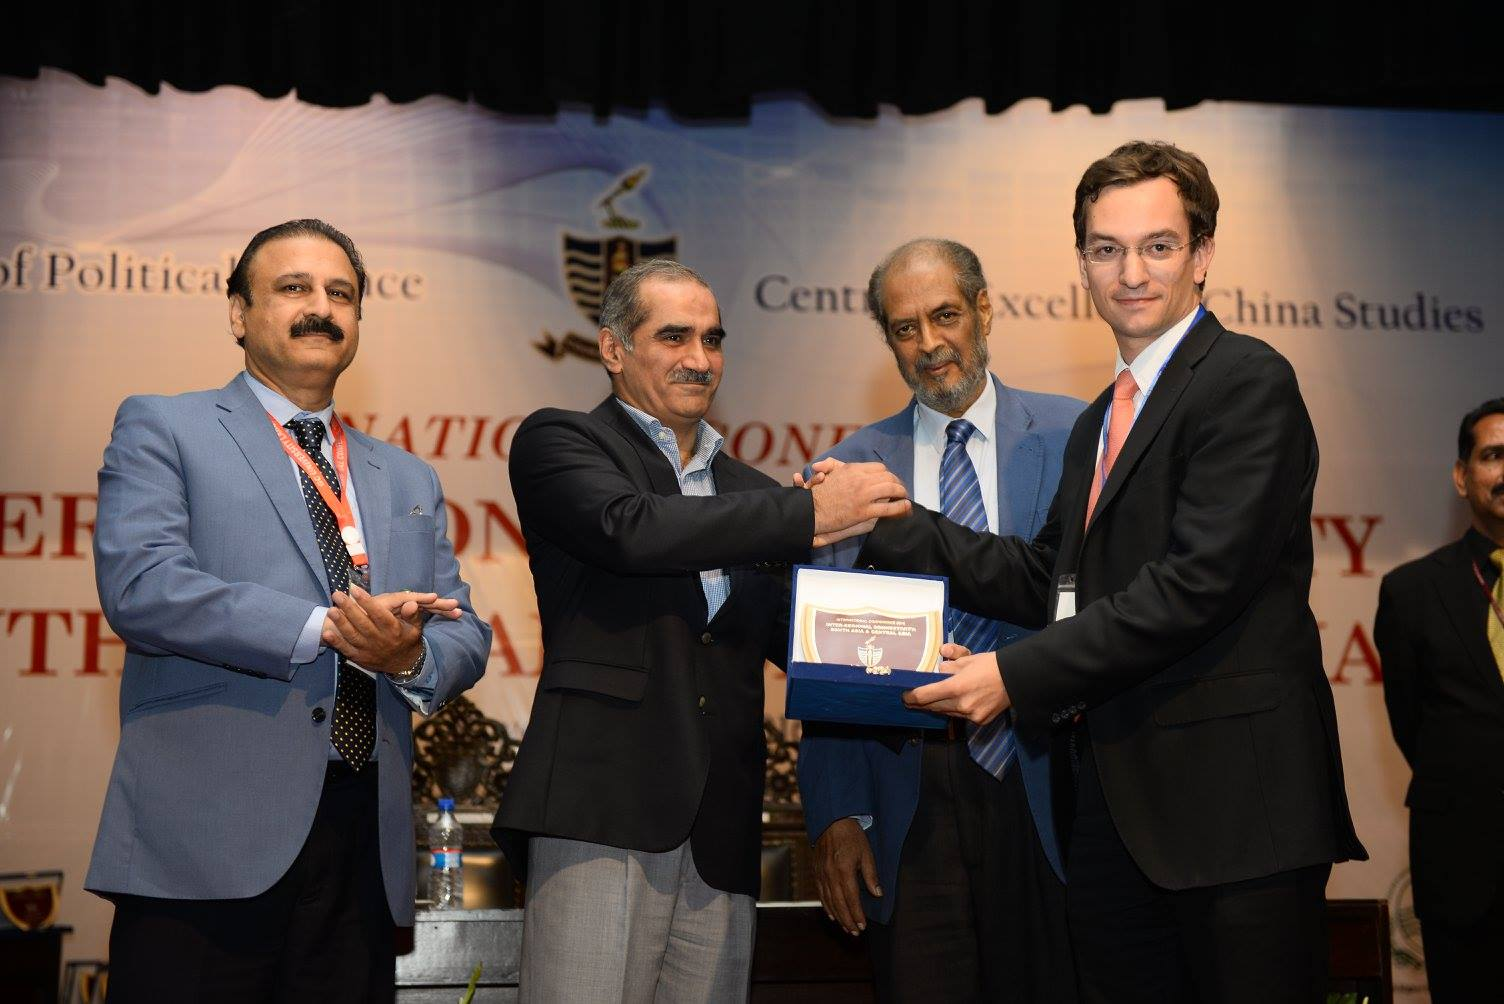 Chief Guest, Khawaja Saad Rafique presenting Souvenirs to Speakers